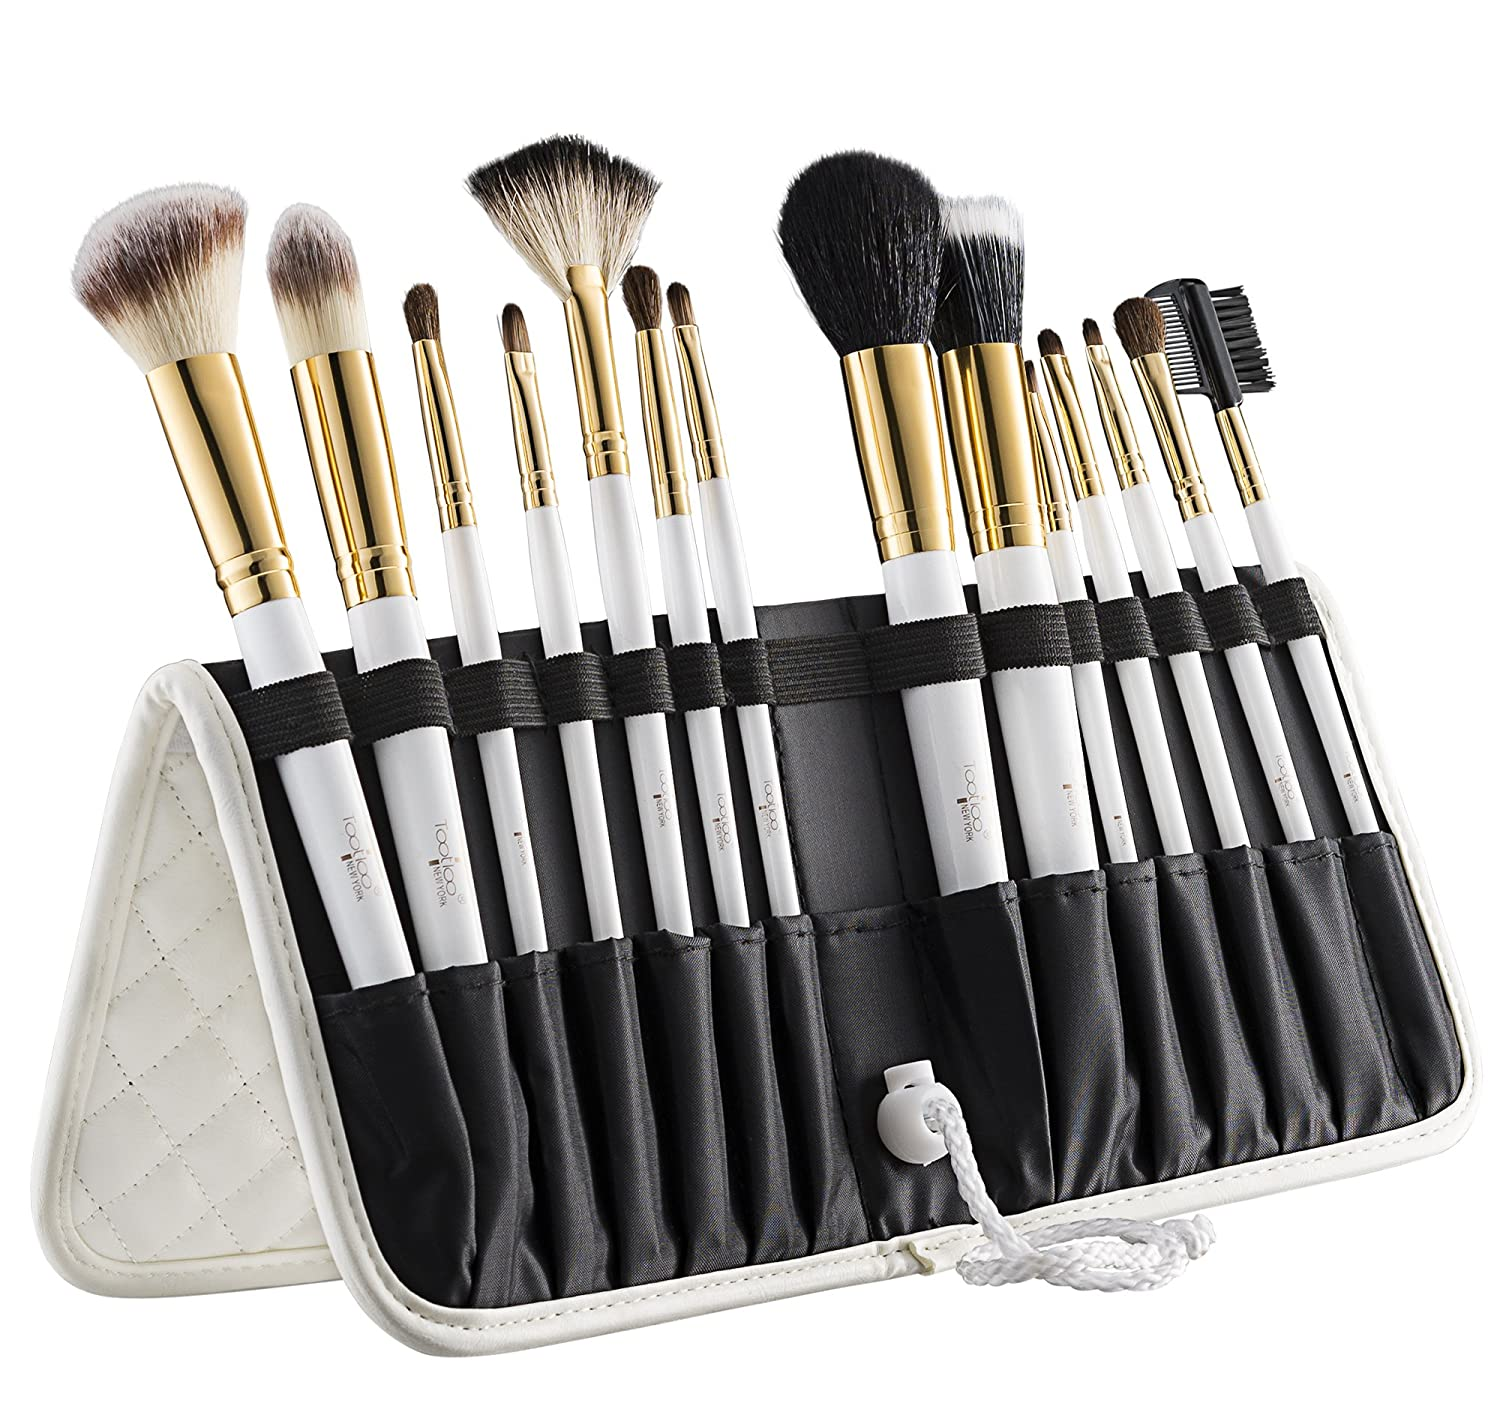 Tootloo's® 14 PC Makeup White Brush Set – Superior Quality Makeup Brushes. Durable, Lightweight & Made of Aluminum Ferule. Free Leather Standing Easel Case & Blender Brush Included – Great Gift Idea!